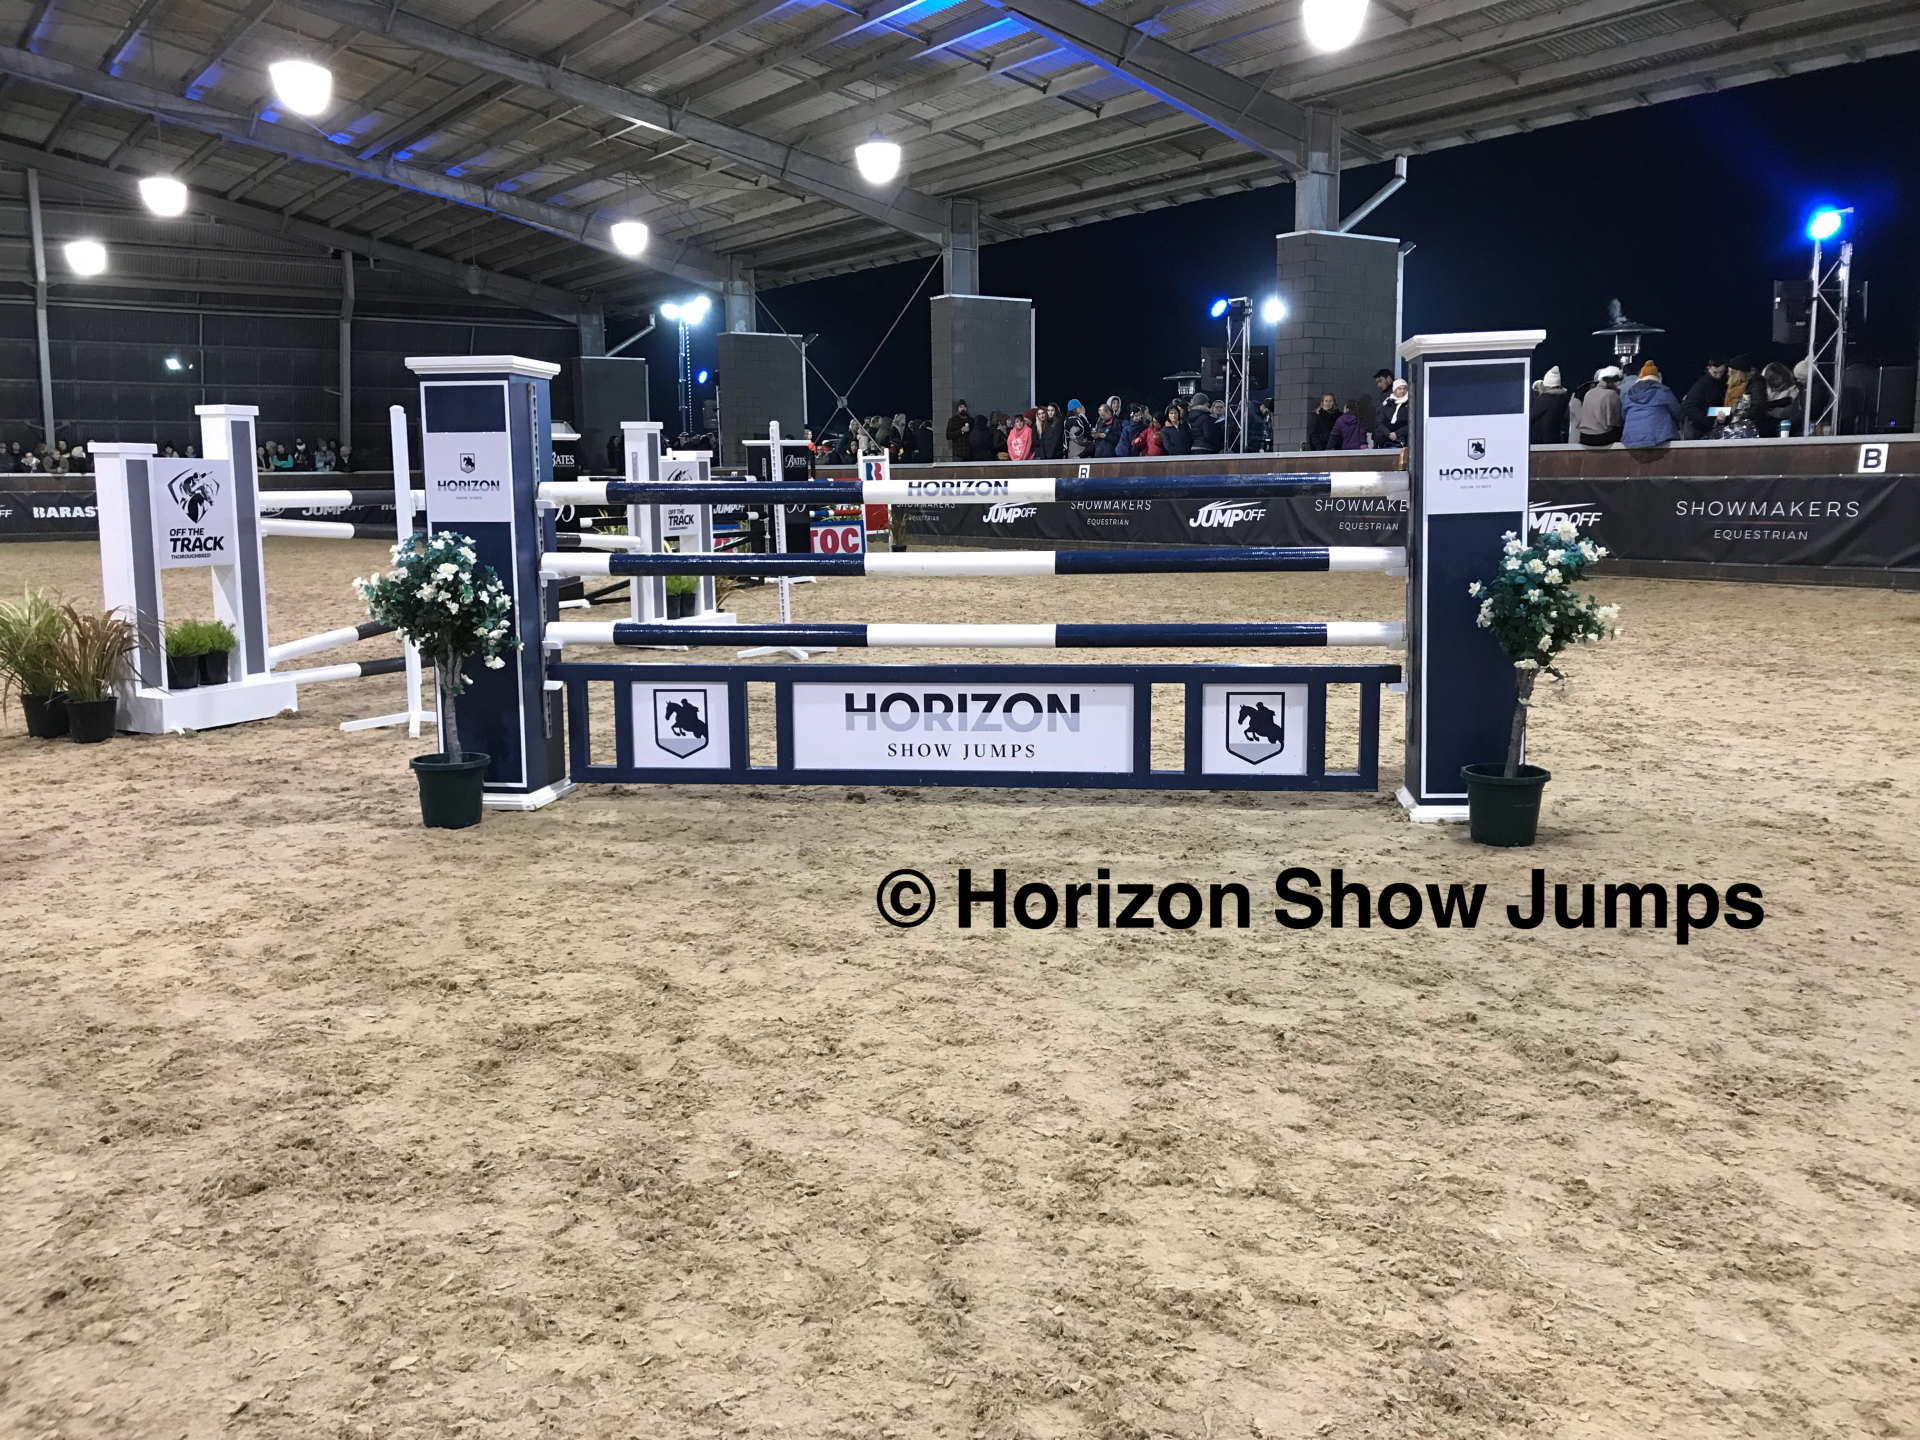 Horizon Show Jumps - Sign Writing